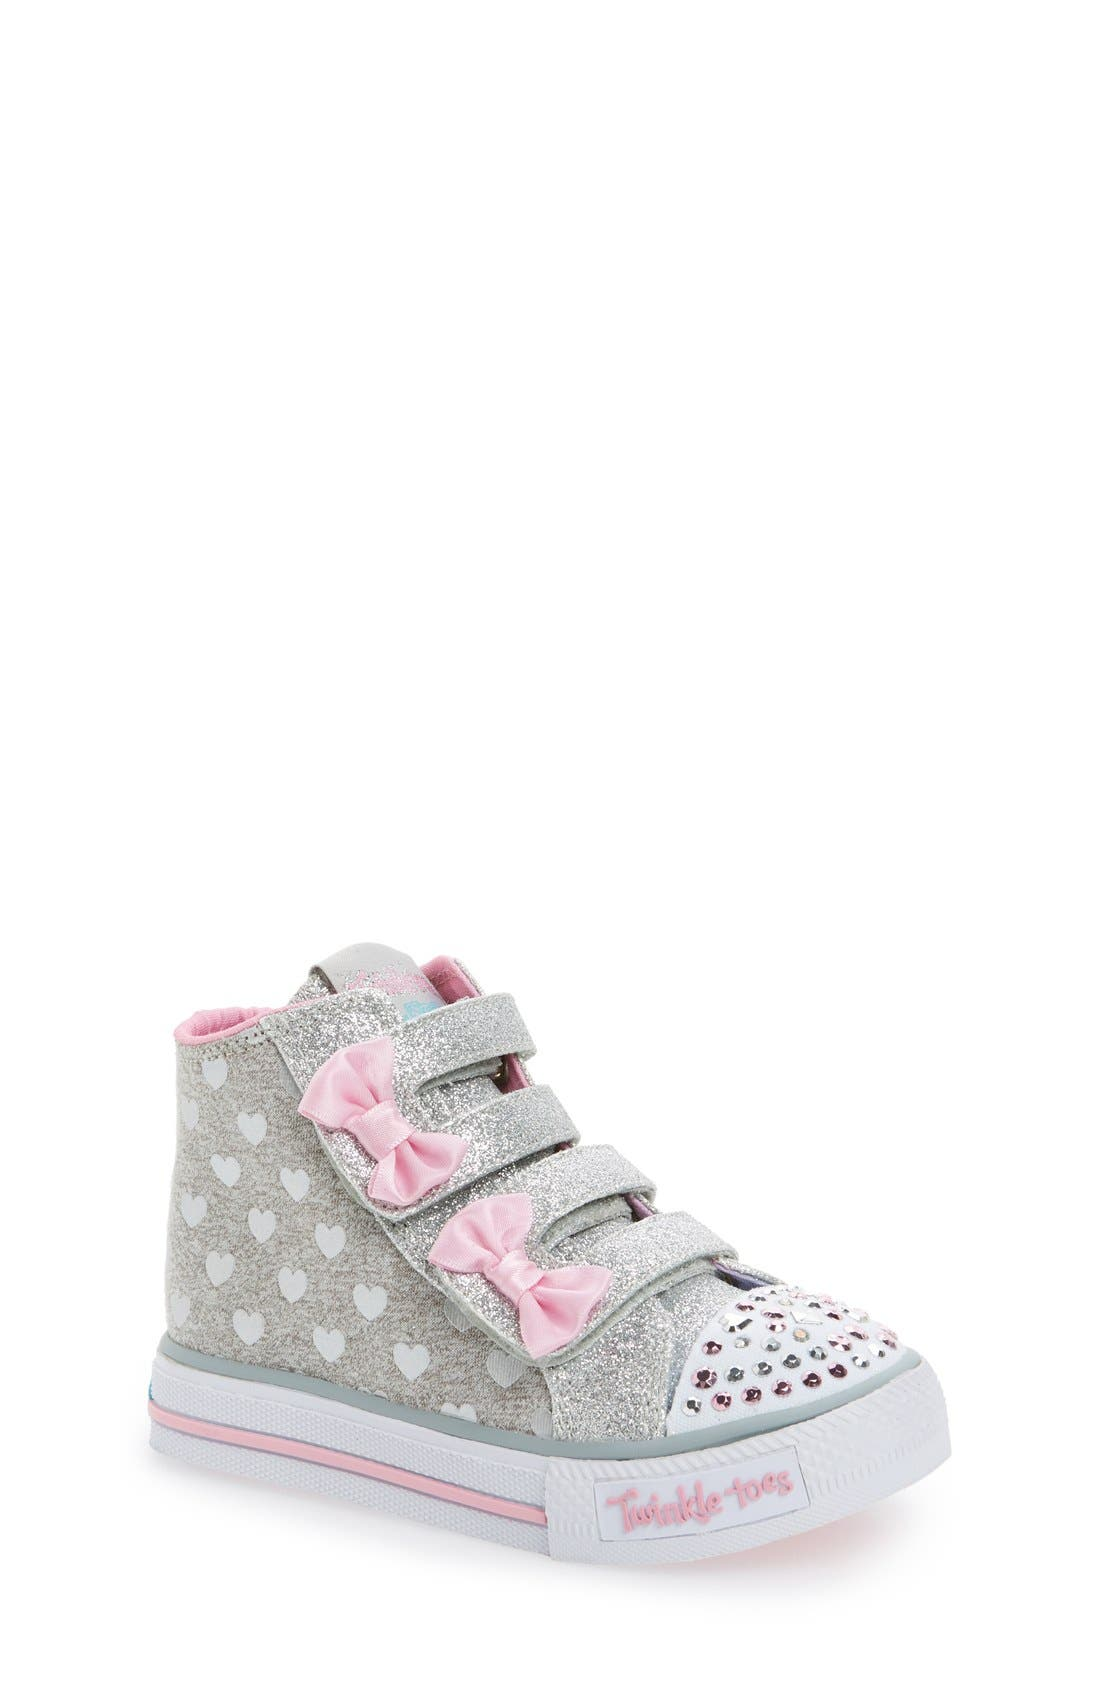 'Twinkle Toes - Shuffles' High Top Sneaker,                             Main thumbnail 1, color,                             596